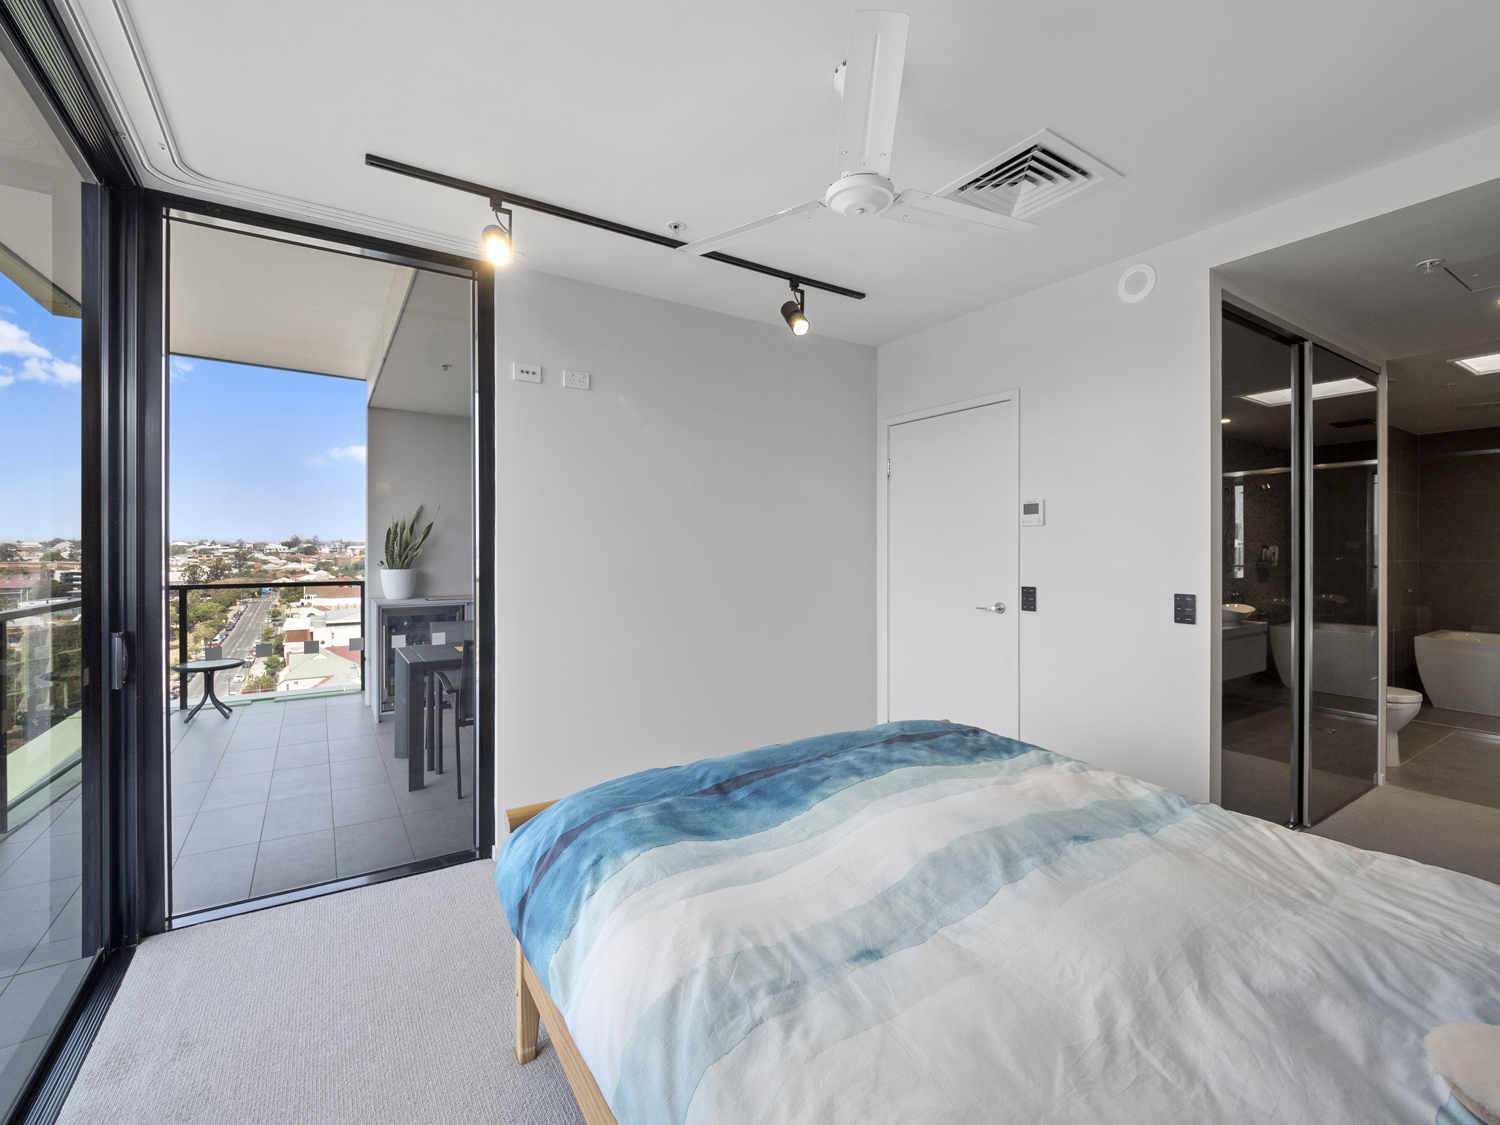 Photographing the master bedroom - 9 Edmonstone St South Brisbane apartment photography